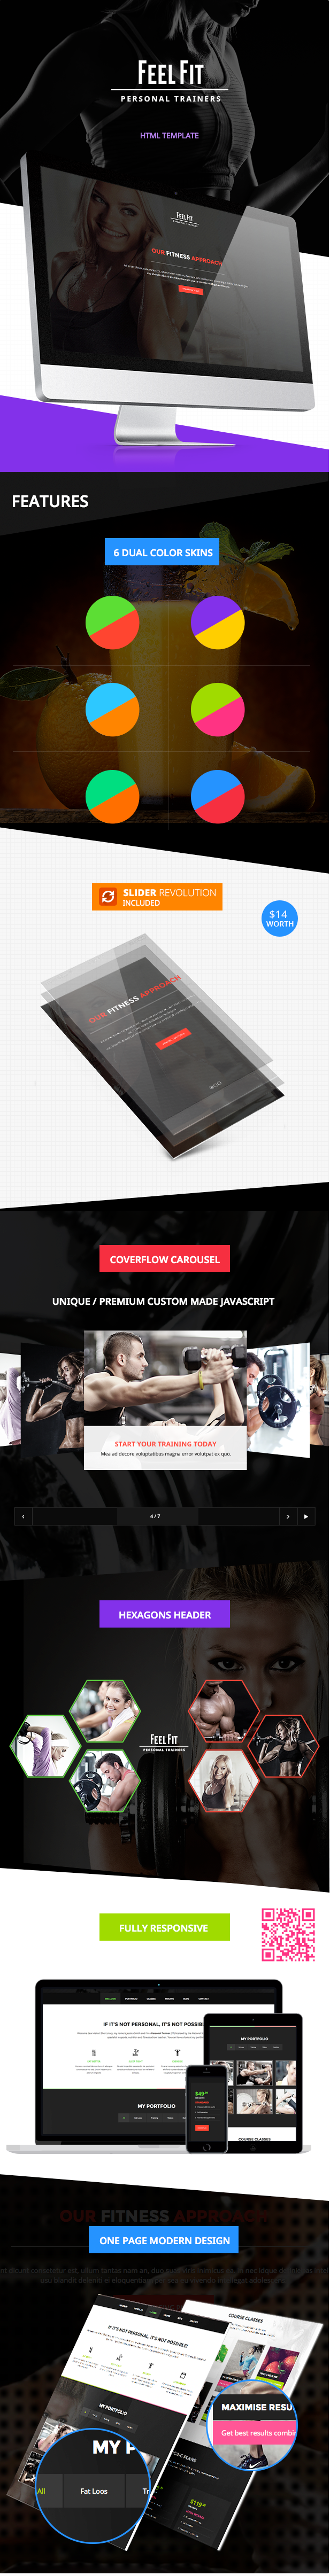 Personal Trainer - One Page HTML5 Template - 3